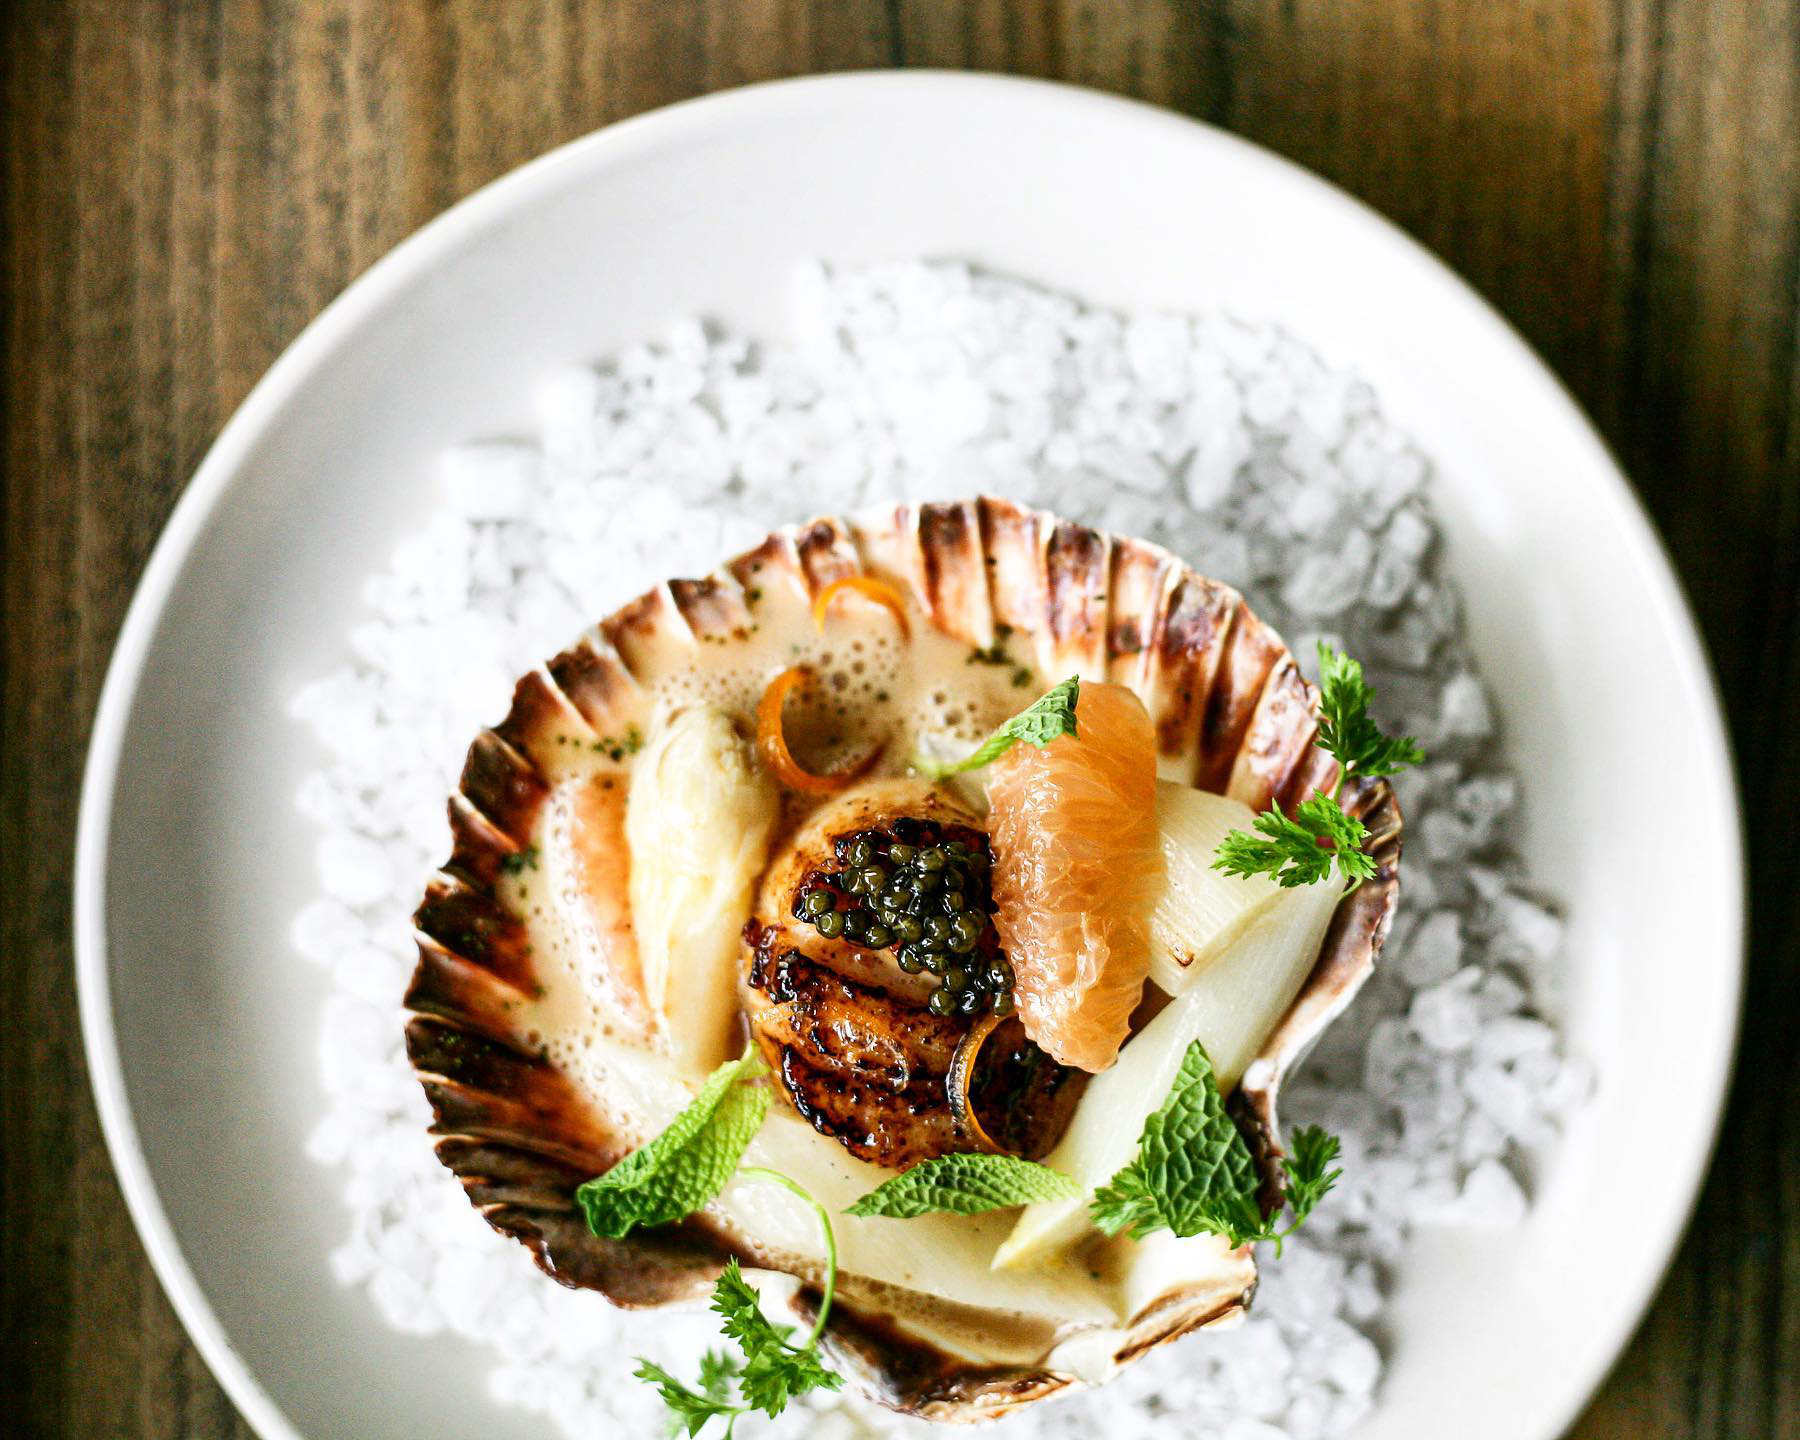 A scallop dish from Jeffrey's